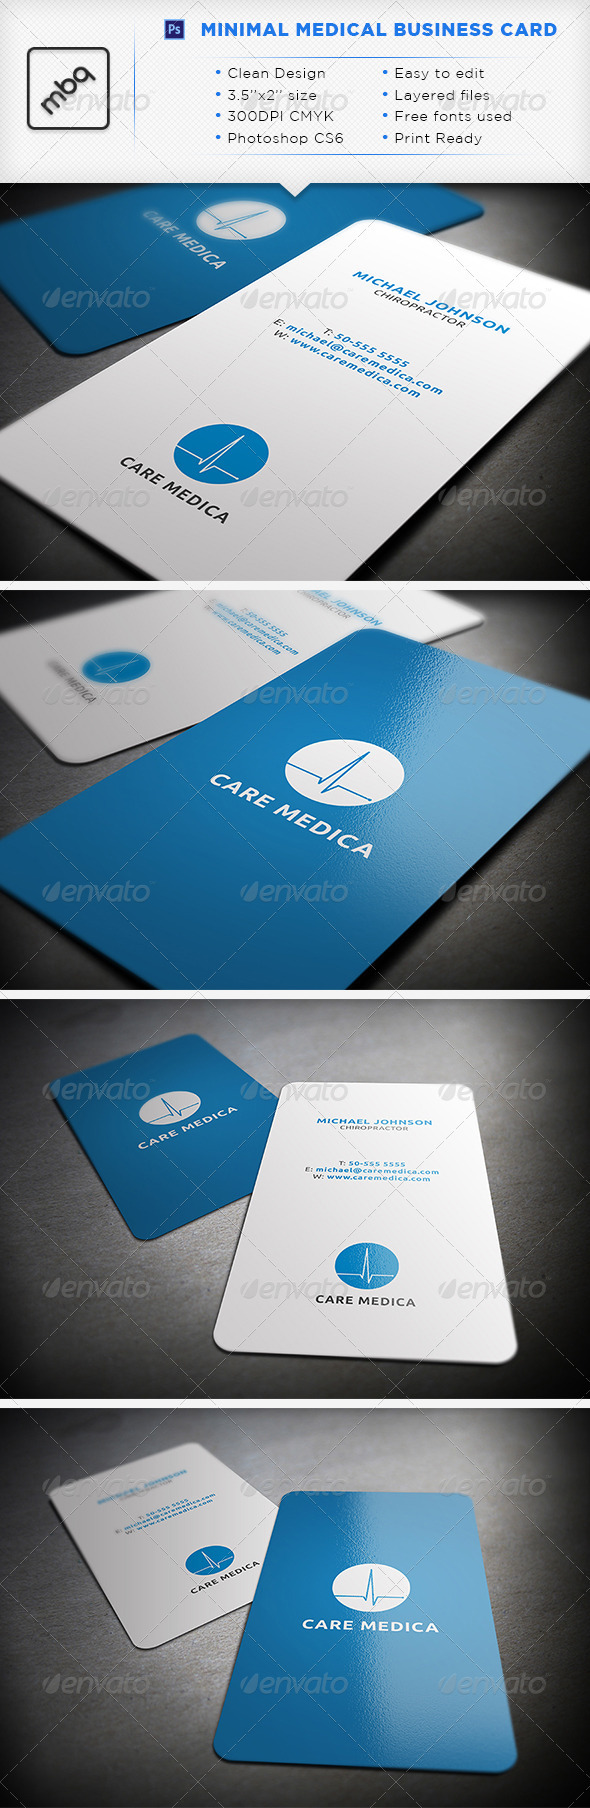 GraphicRiver Minimal Medical Business Card 3327581